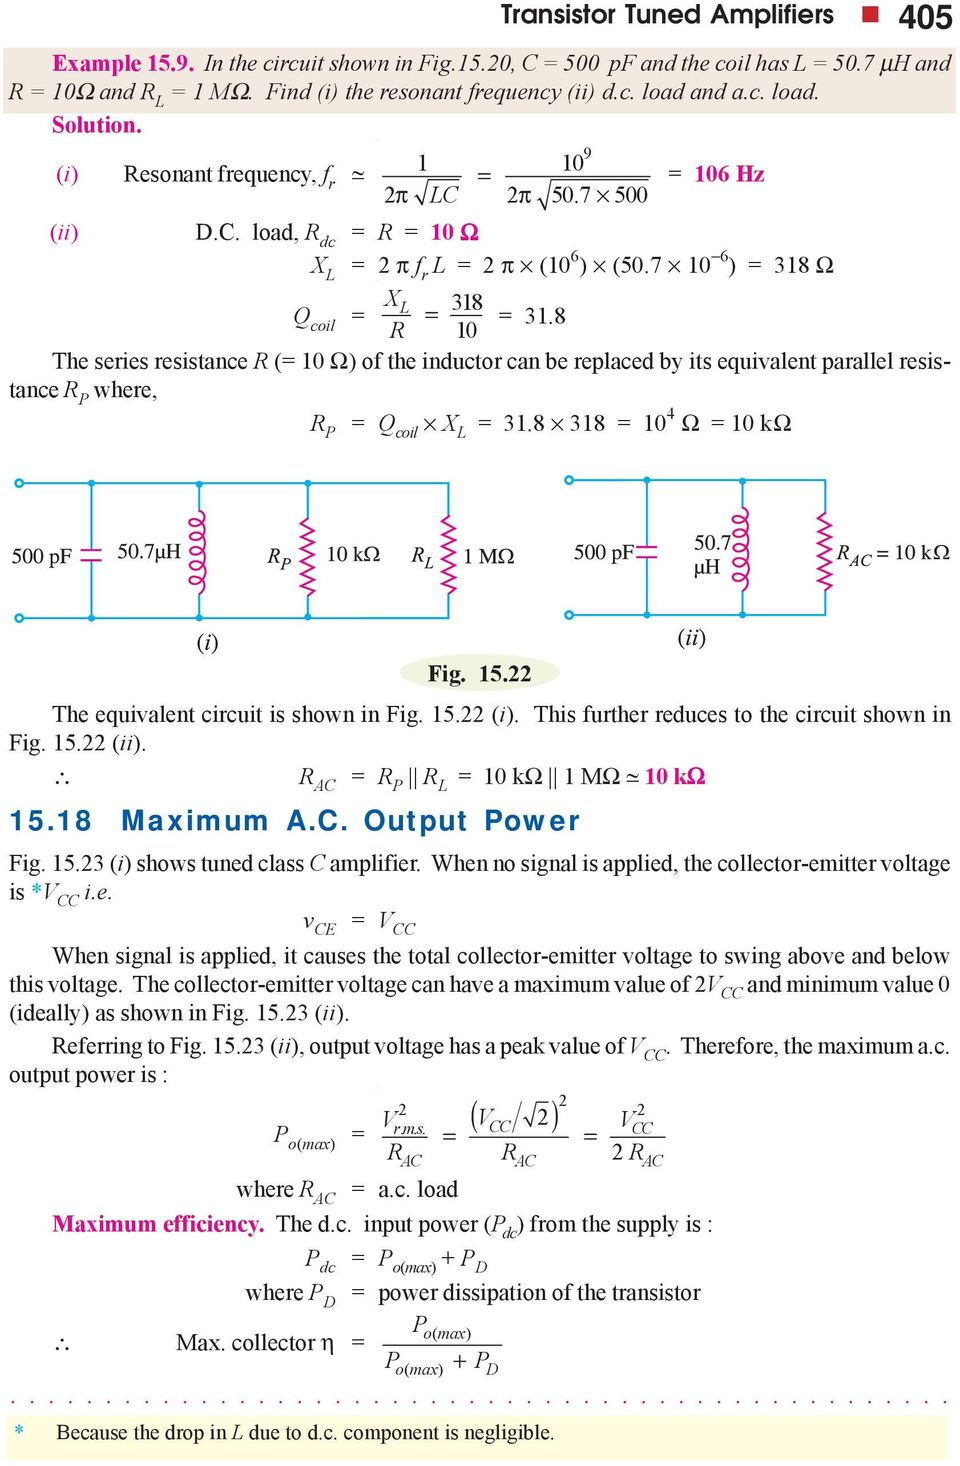 Transistor Tuned Amplifiers Pdf Series Resonance In Ac Circuits Tutorial Phasors And 7 0 6 38 Q Coil X The Resistance